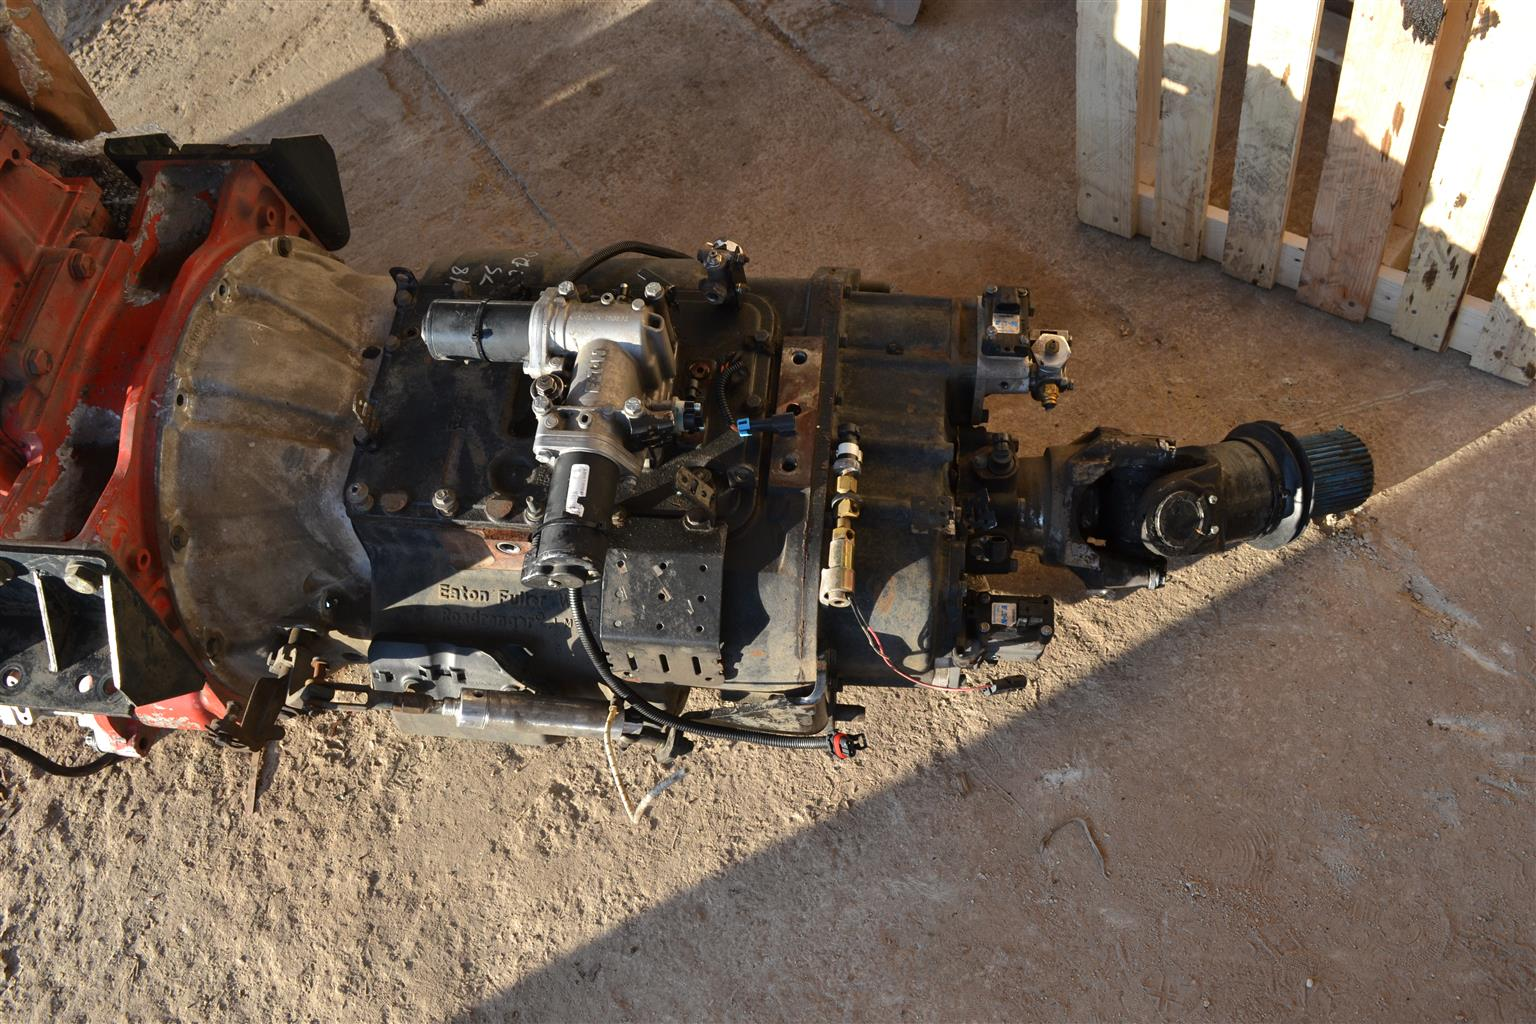 EATON FULLER GEARBOX R35 000 - MOTOR CITY AUTO SPARES